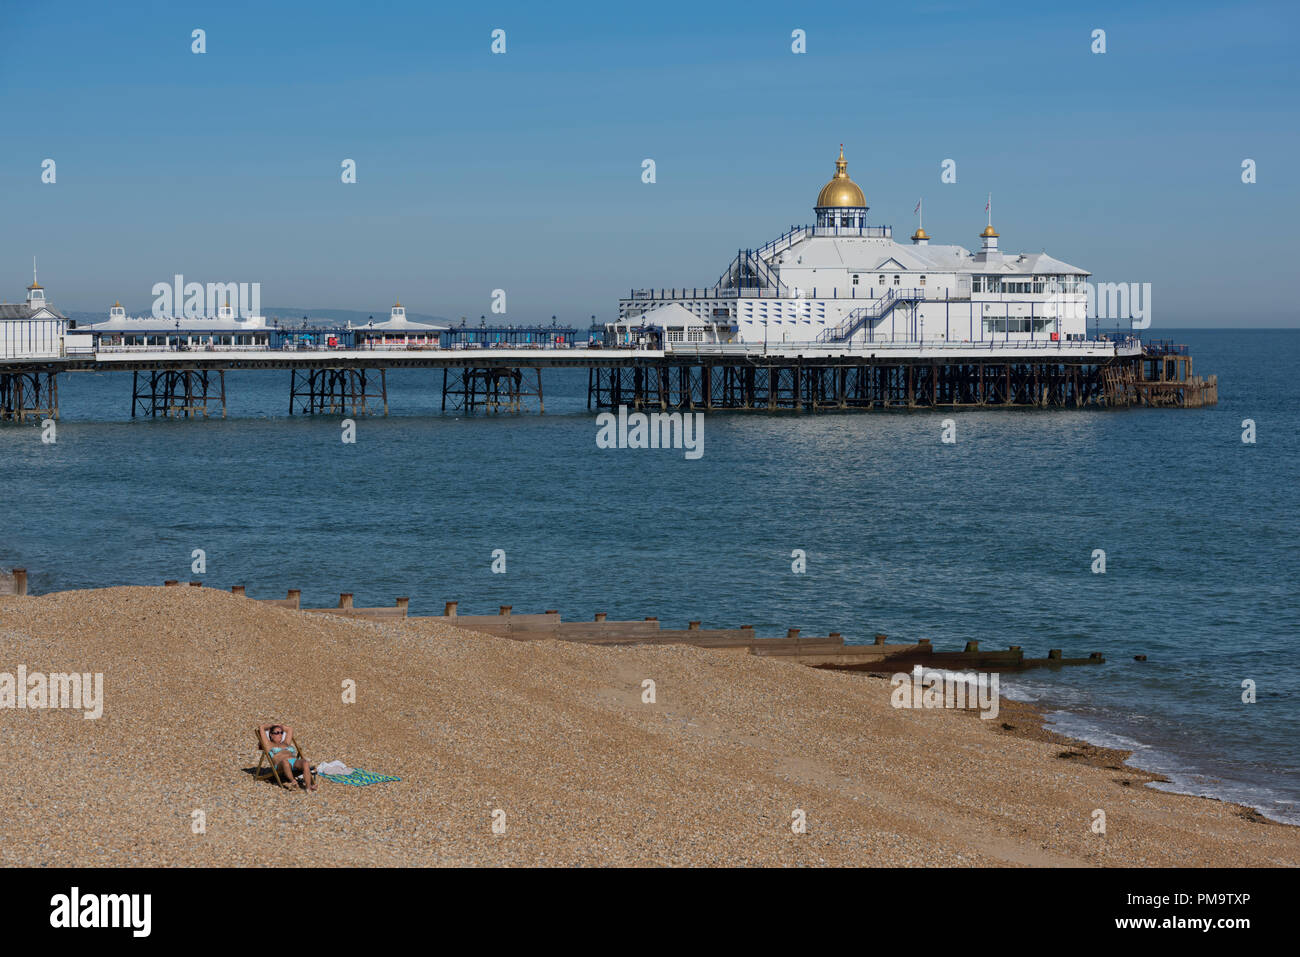 A solitary sunbather on the beach at Eastbourne in the county of East Sussex on the south coast of England with the pier behind. - Stock Image